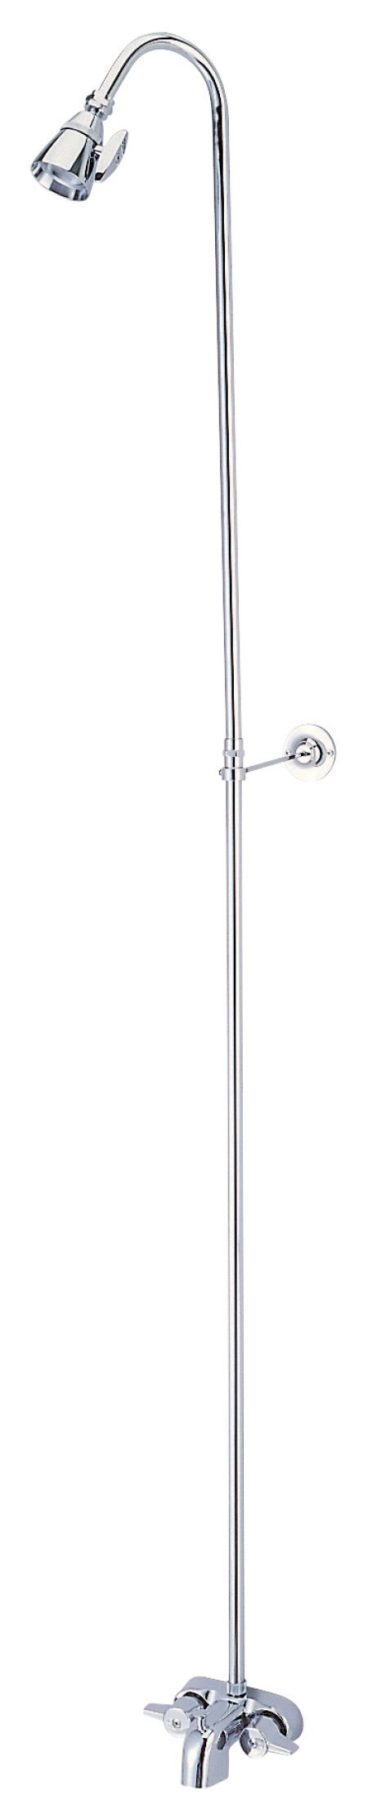 KINGSTON BRASS CC312 VINTAGE CONVERT-A-SHOWER